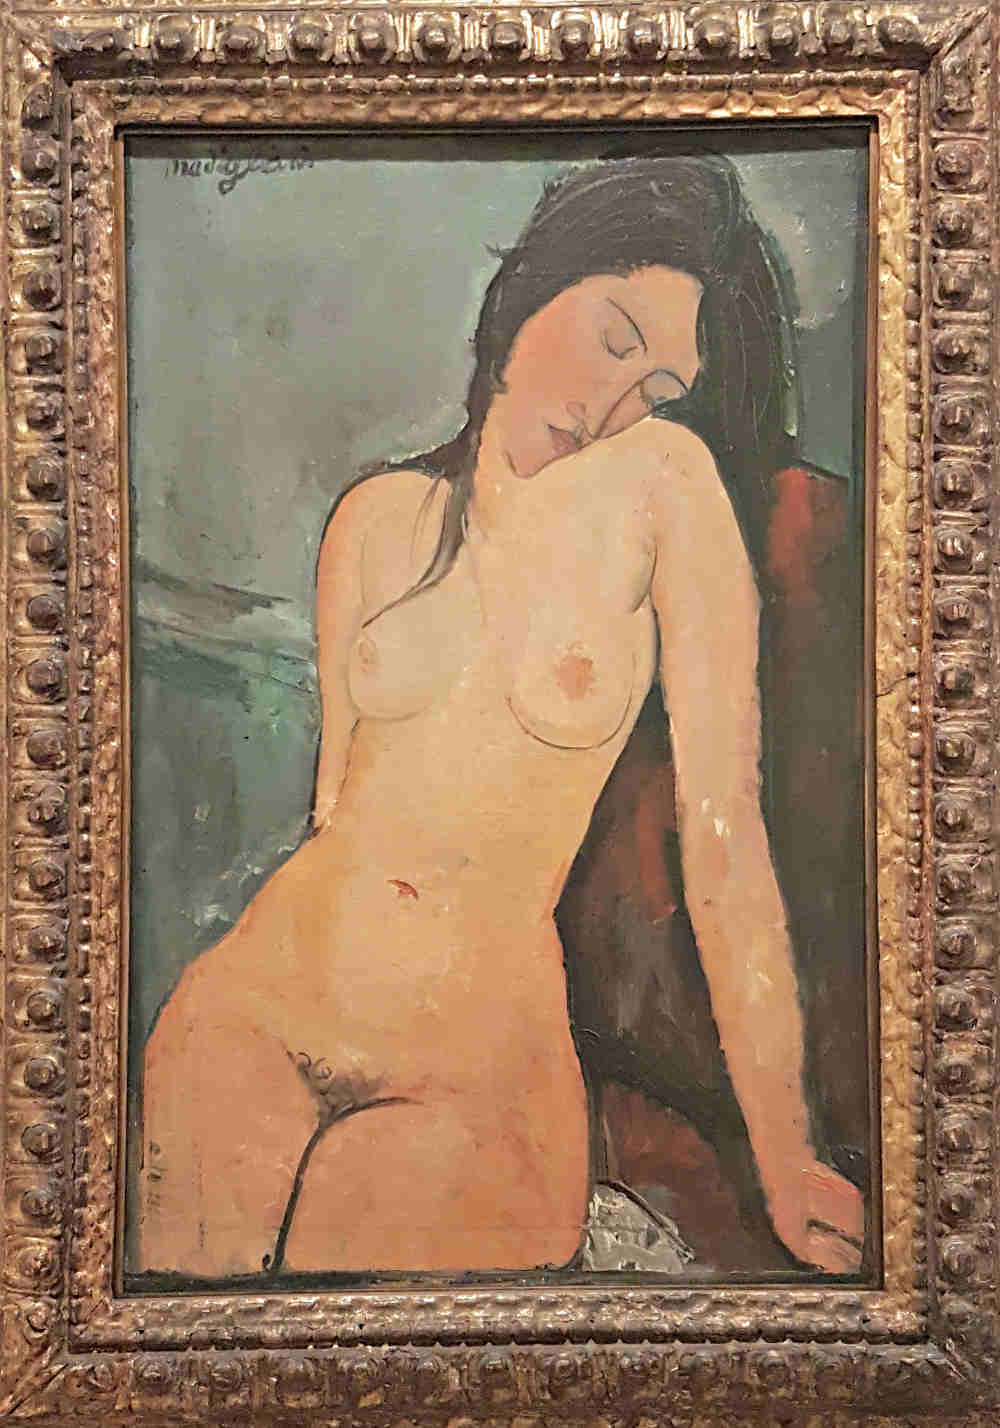 Erotic London, Erotic Art London, Erotic Art in London, Modigliani, Courtauld Gallery